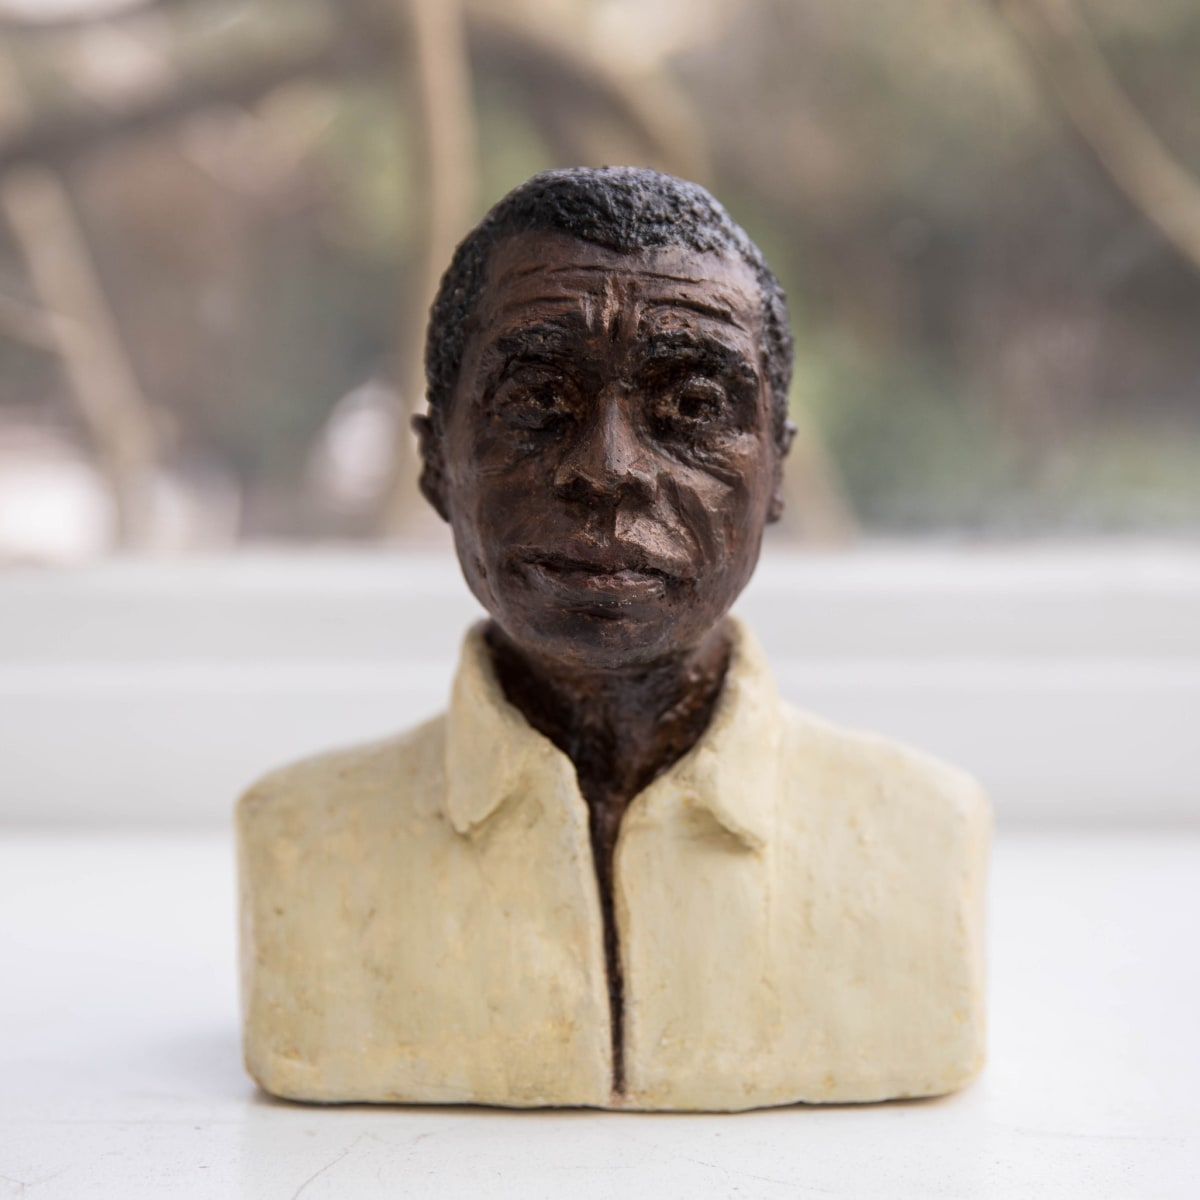 Nicole Farhi James Baldwin ciment fondu and acrylic; hand-painted bronze casts available to purchase 18 x 15 x 7 cm edition of 7 + 3 APs